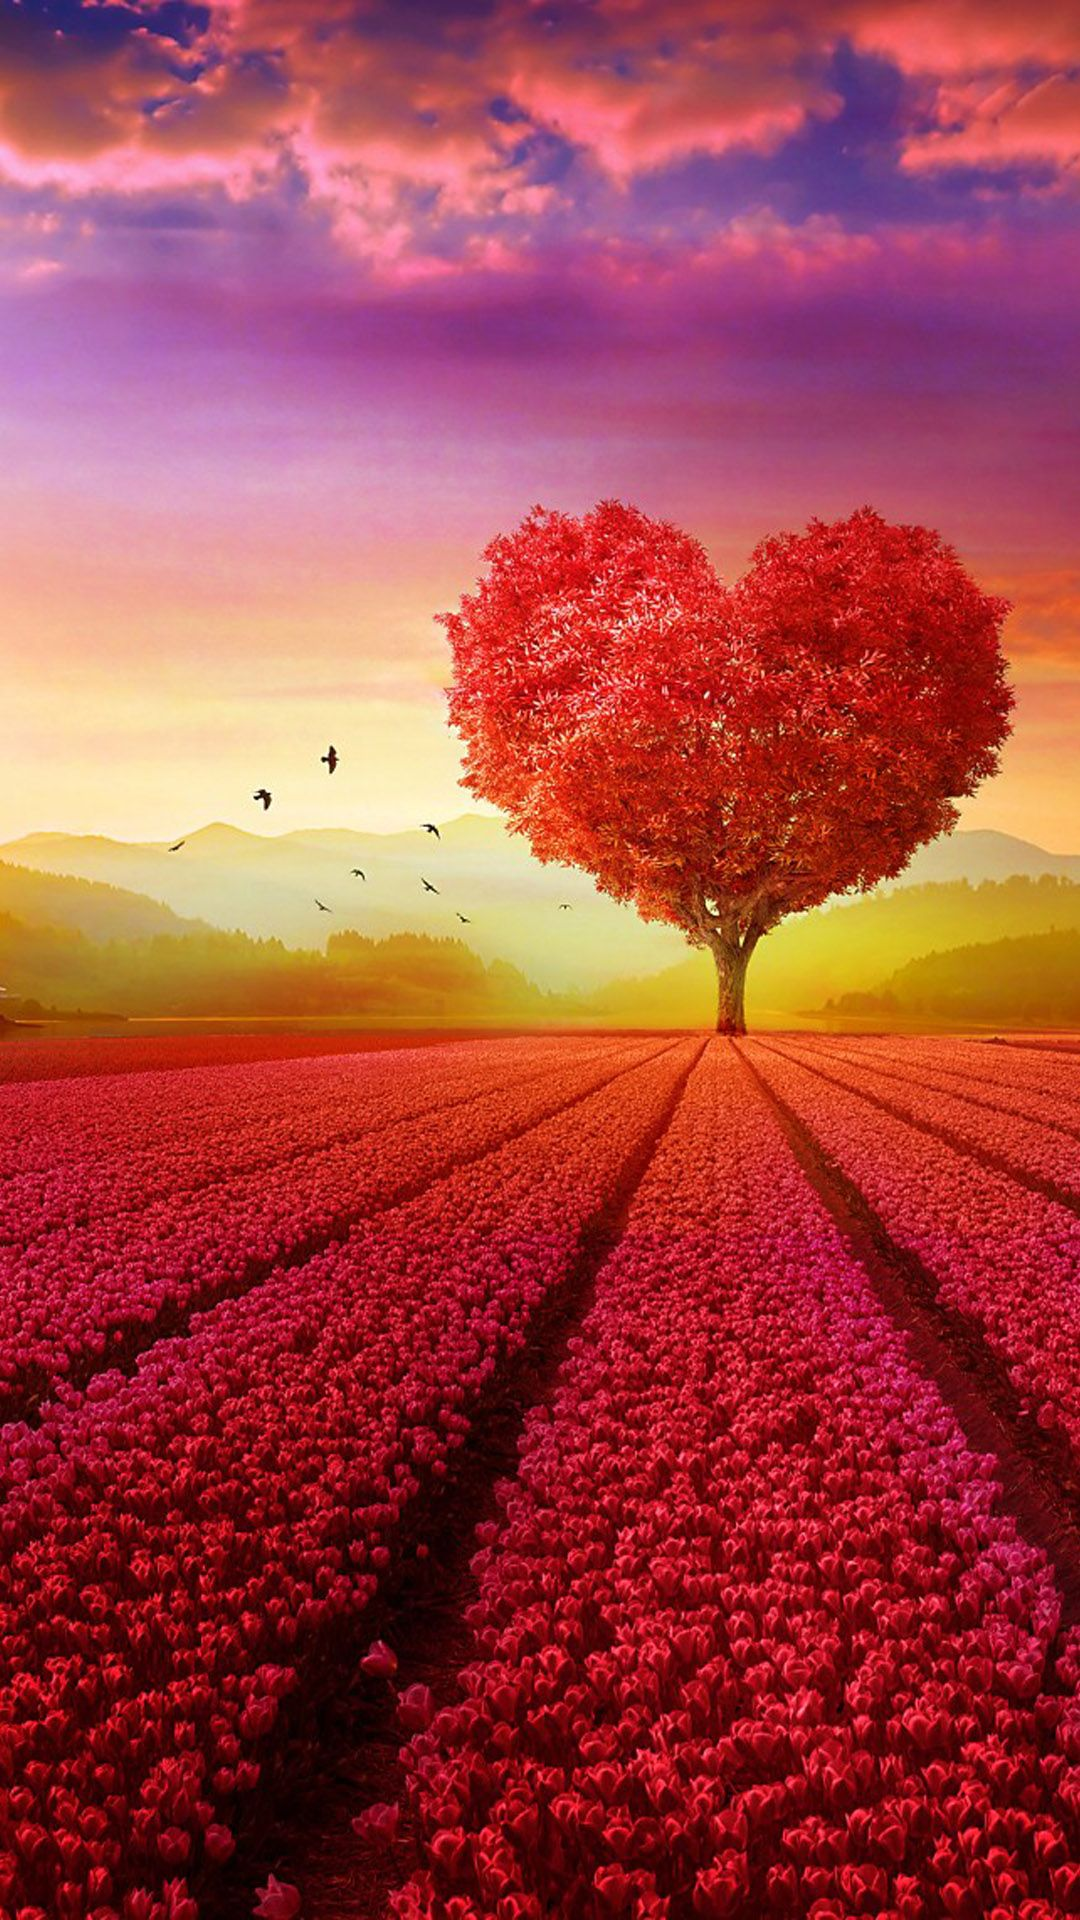 View And Download Love Heart Shape Tree Flowers 4k Ultra Hd Mobile Wallpaper In 2020 Tree Wallpaper Backgrounds Beautiful Landscape Wallpaper Love Wallpapers Romantic